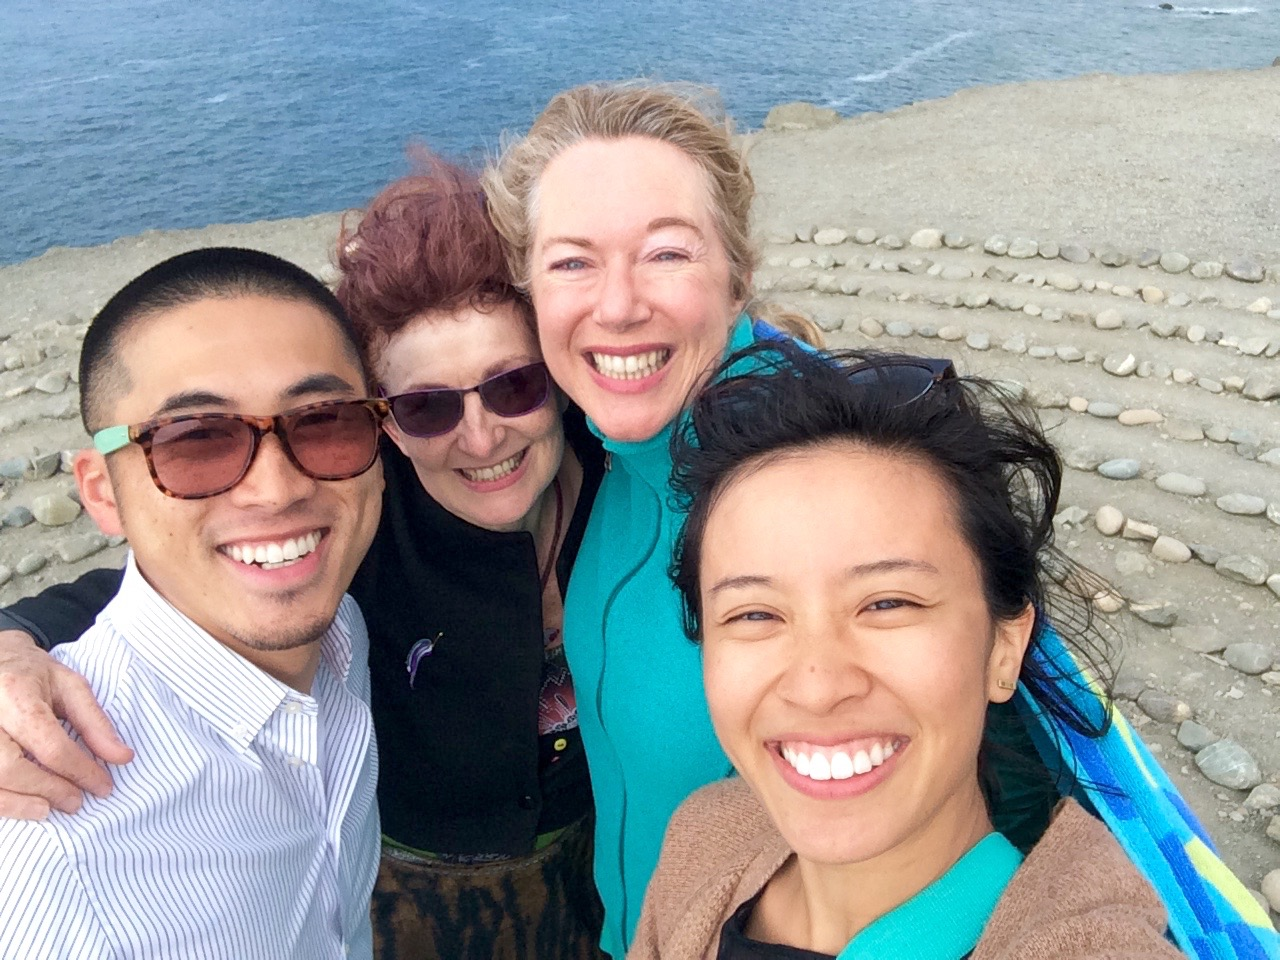 August 7, 2015. Land's End Labyrinth Rock Maze - San Francisco. Pictured from left to right (Myself, Mary, Sarah, Mai-Thi)